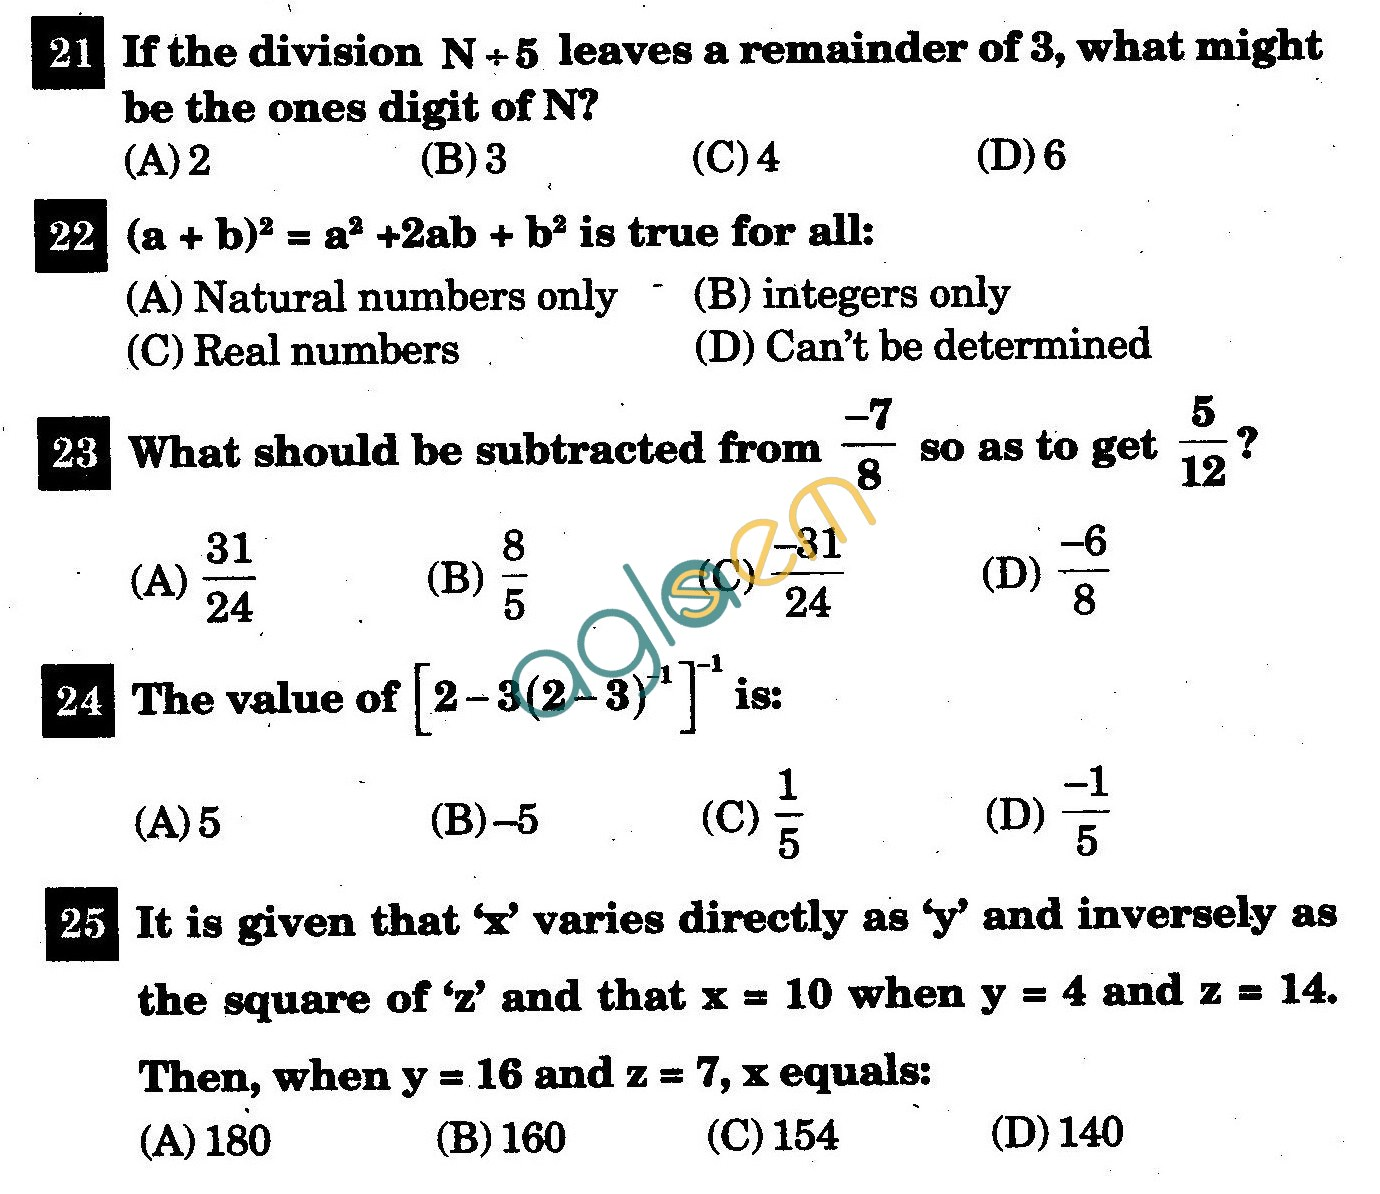 NSTSE 2011 Class VIII Question Paper with Answers - Mathematics